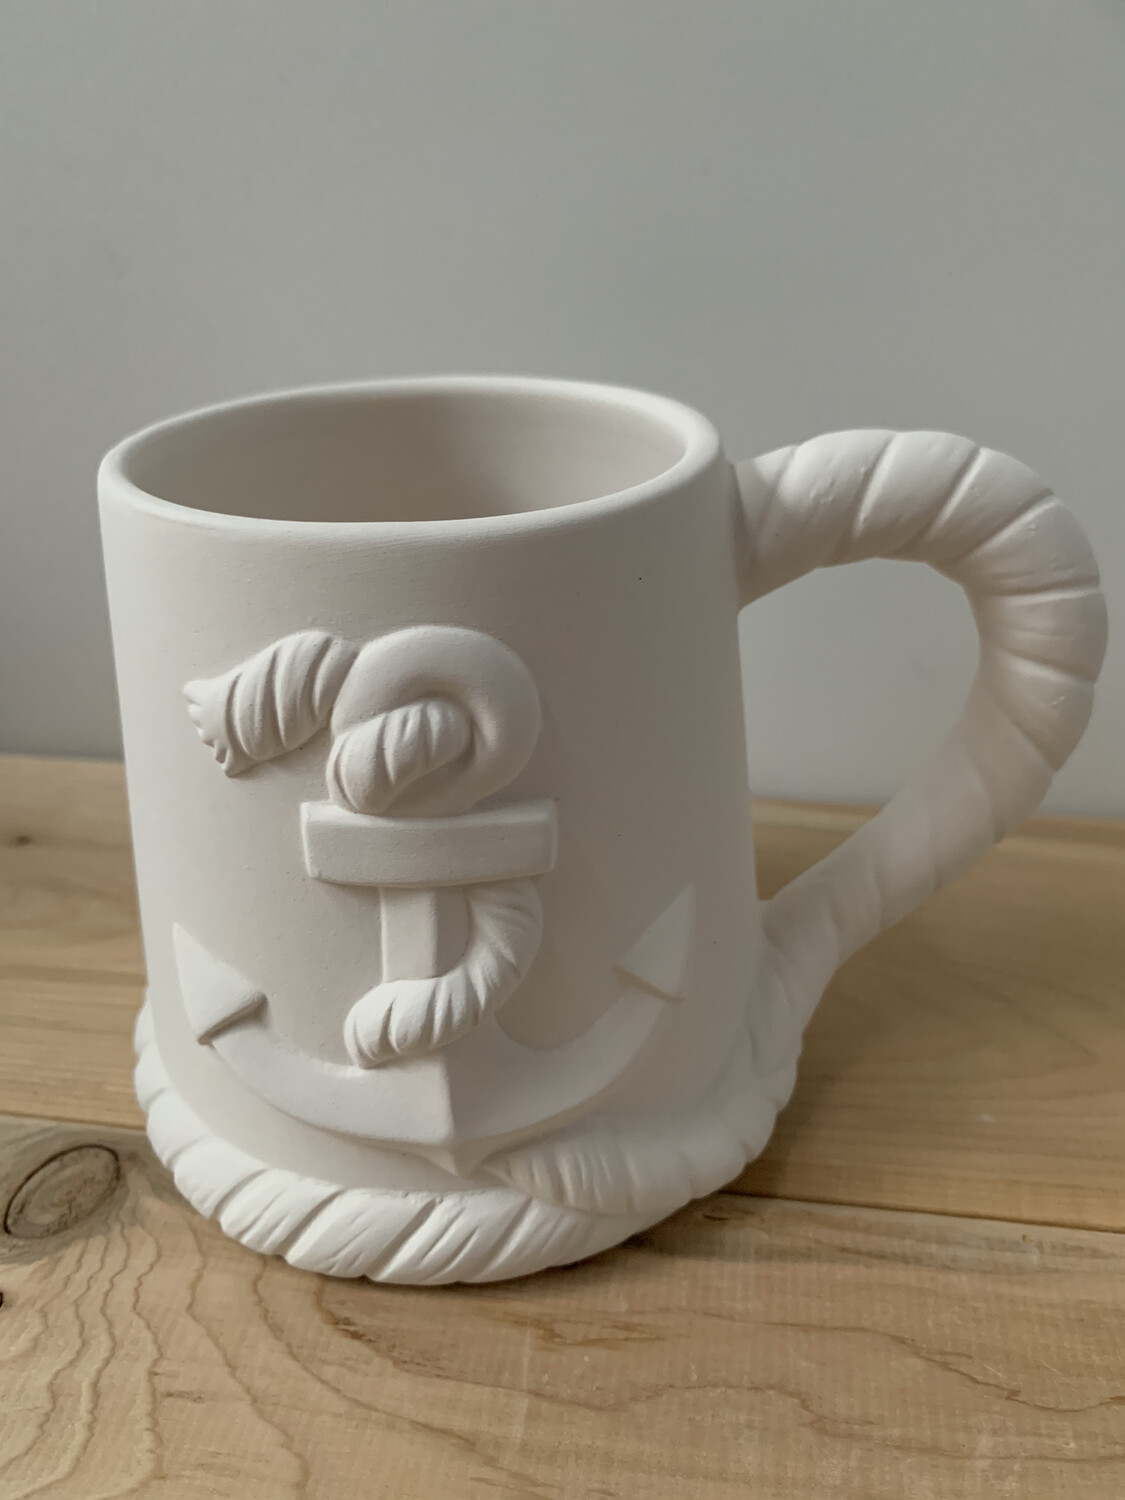 Paint Your Own Pottery - Ceramic  Anchor Mug Painting Kit